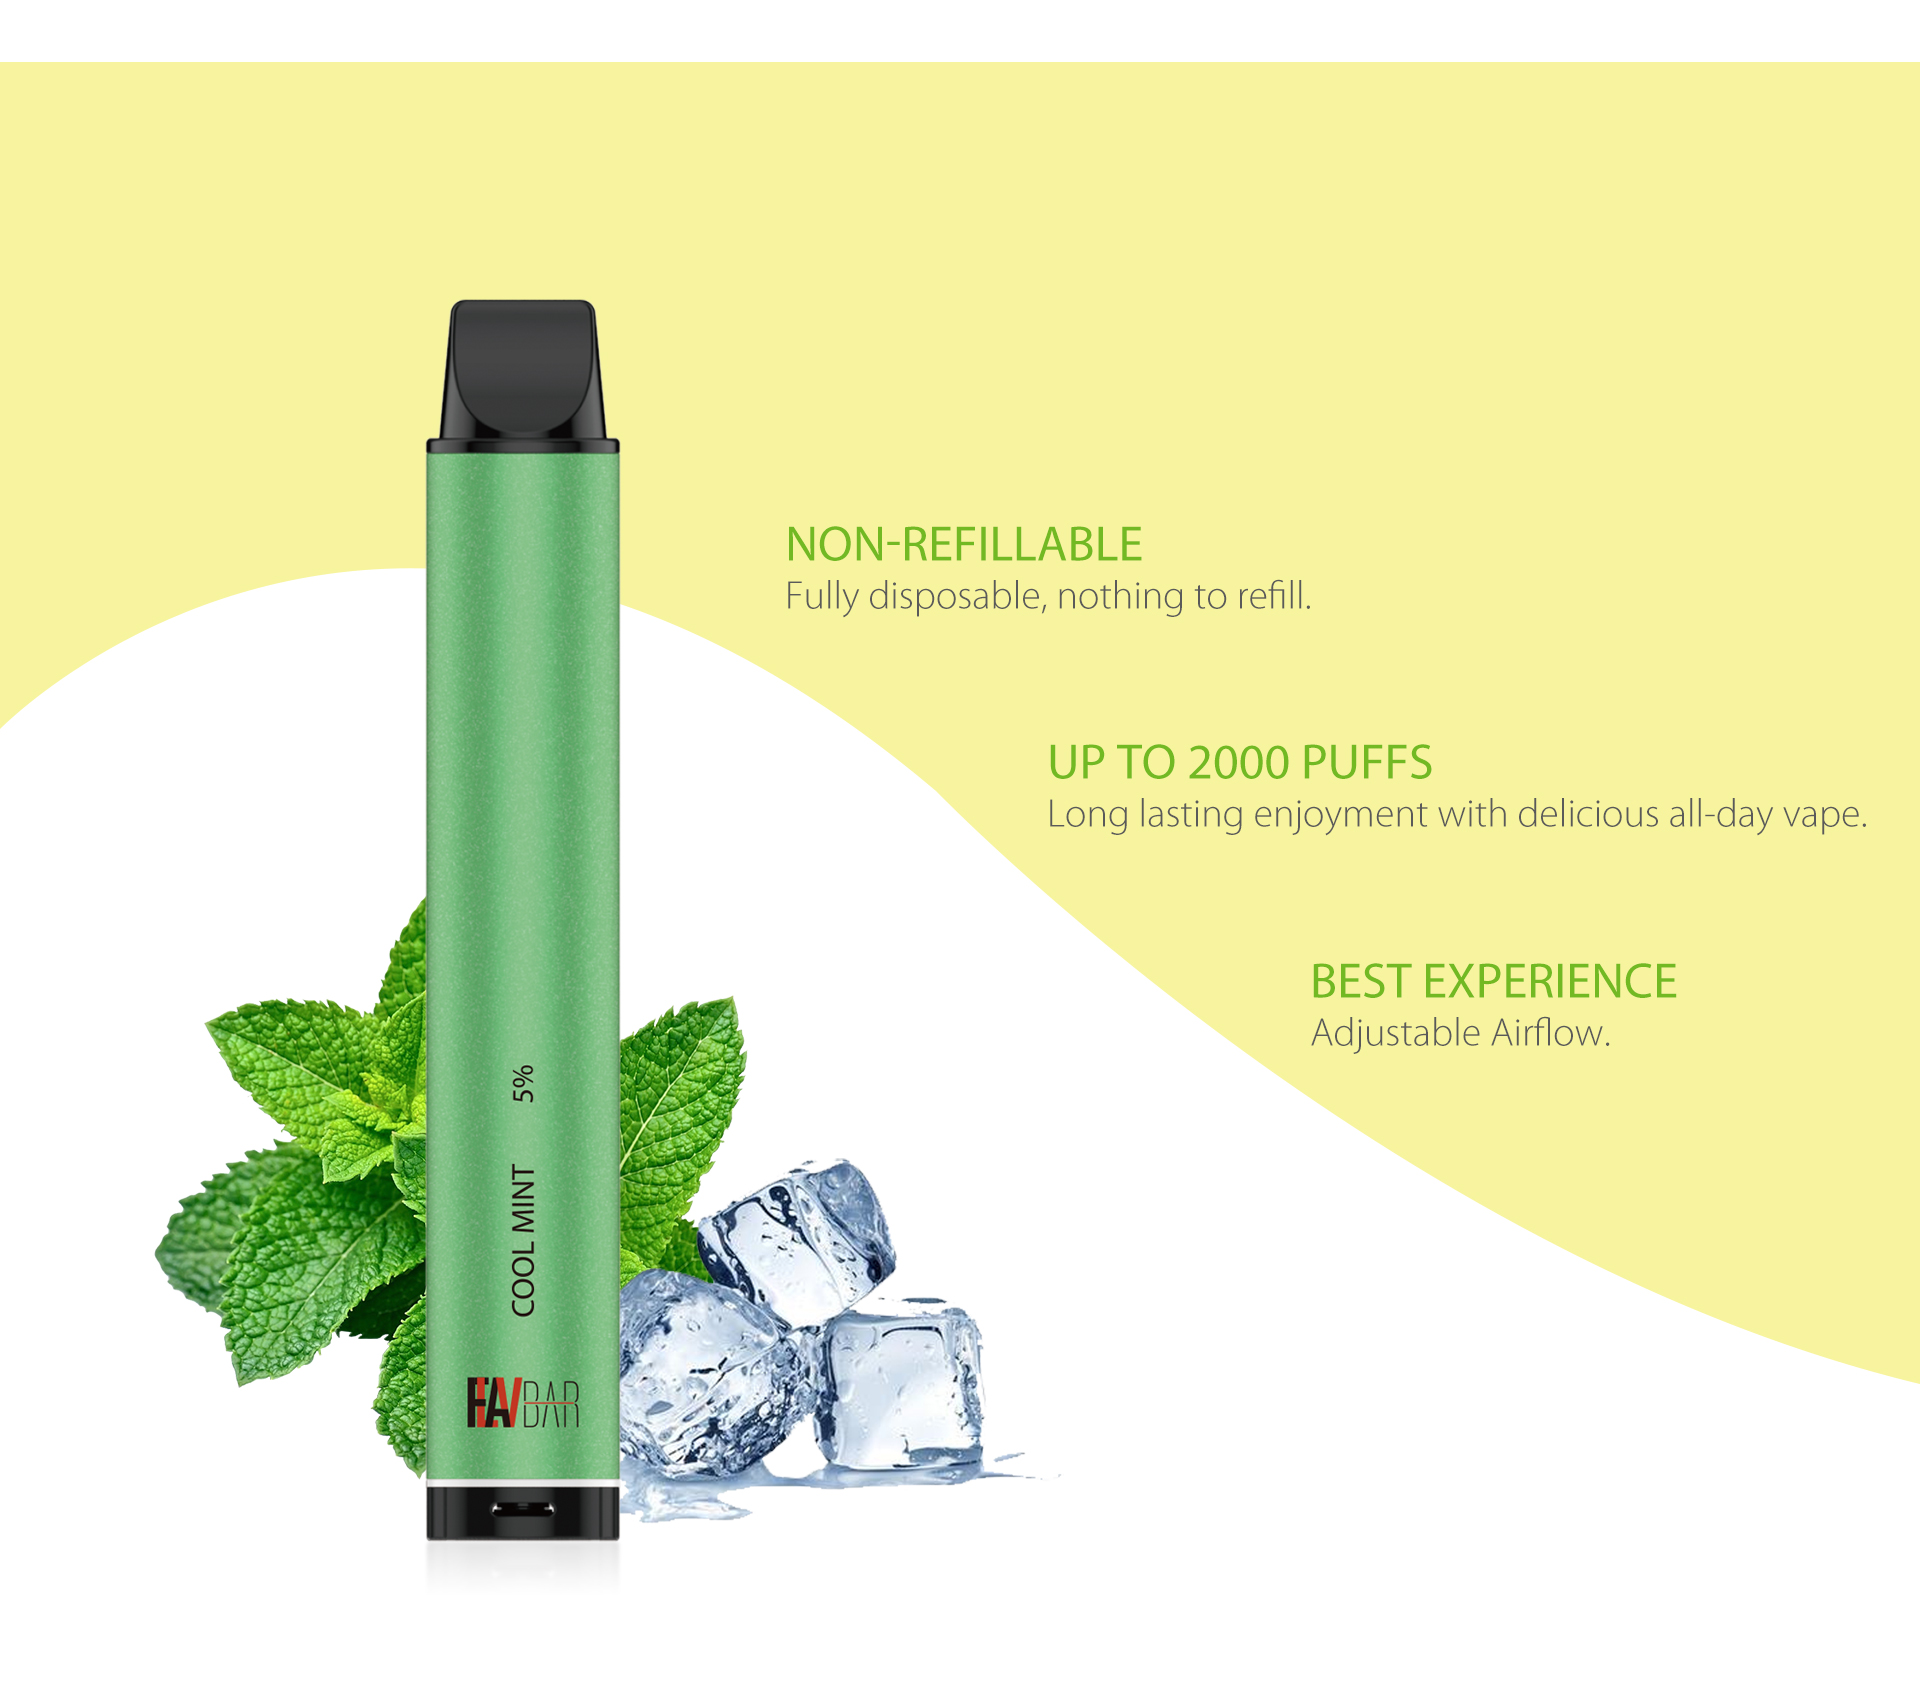 Flavbar v3 disposable vape device comes with adjustable airflow function.